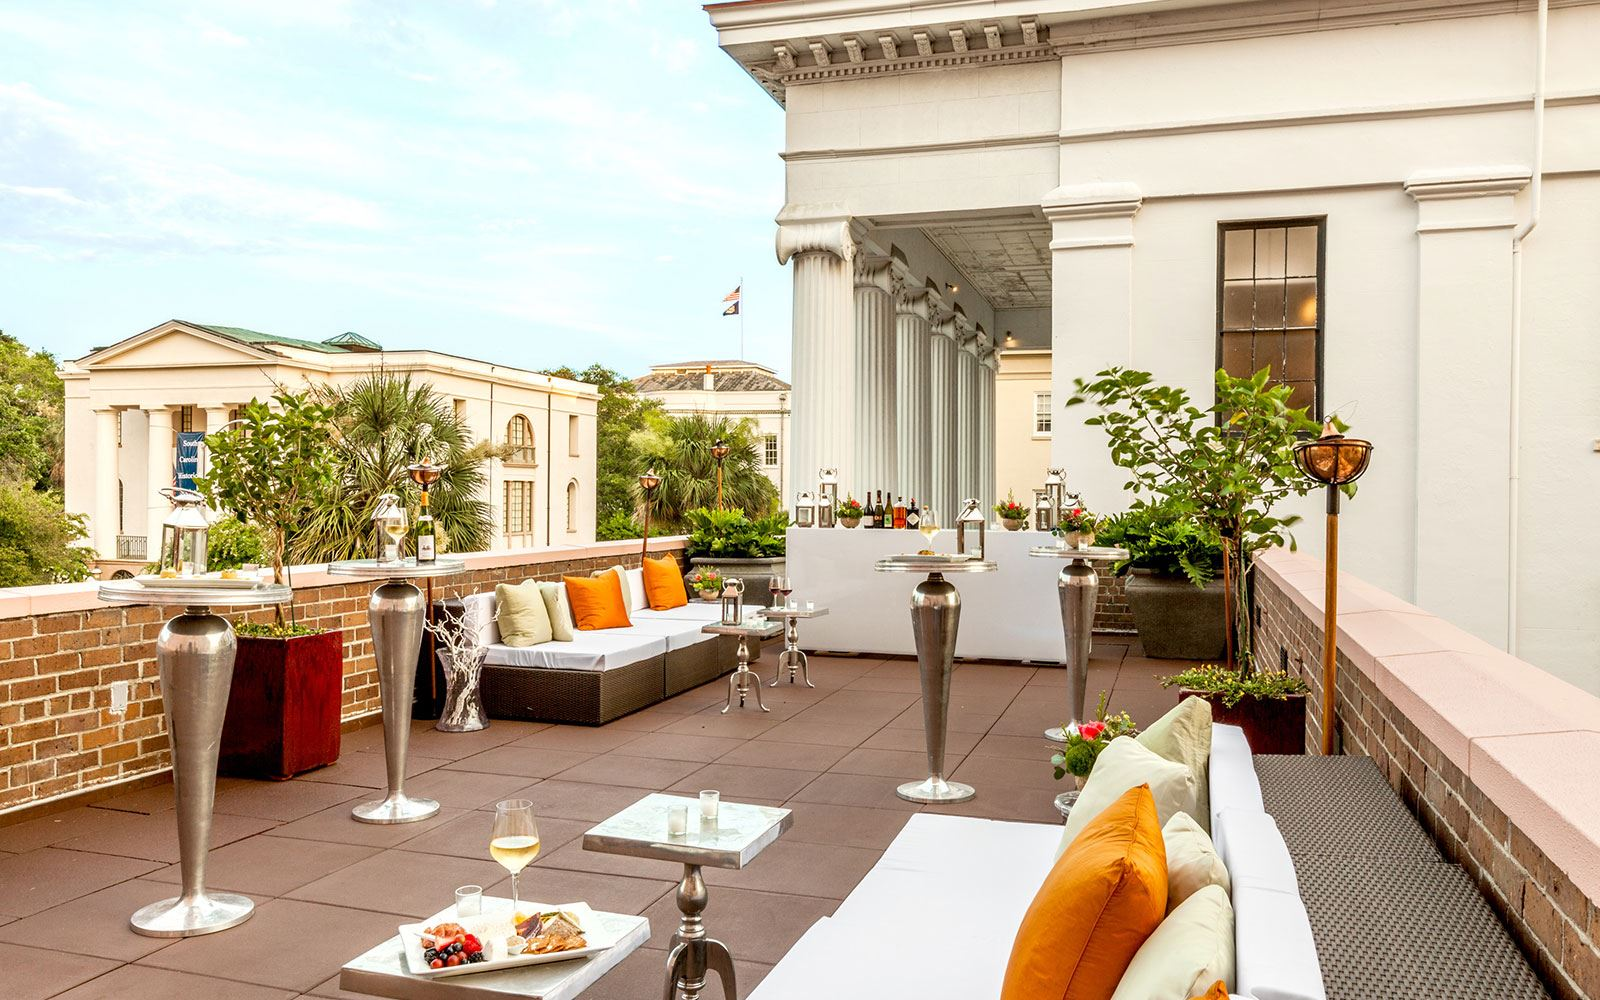 Outdoor Lounge Dining at The Mills House Wyndham Grand Hotel